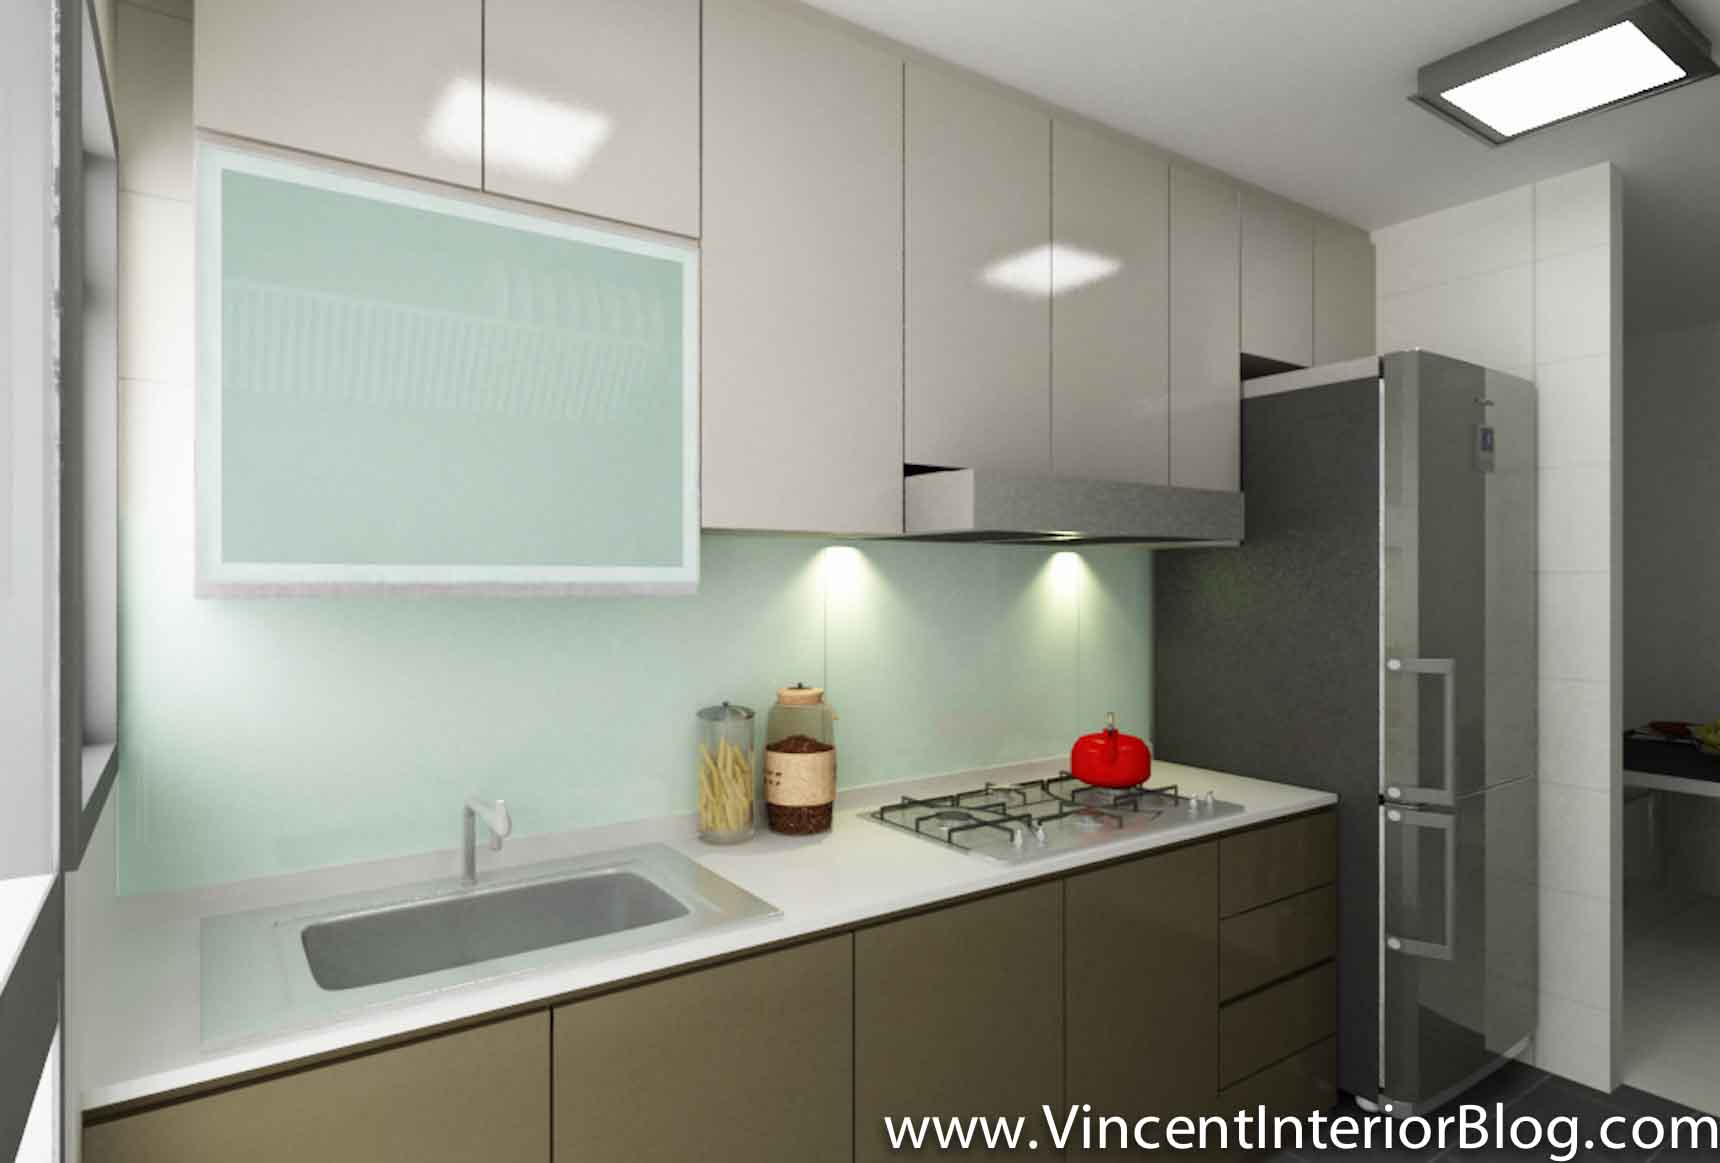 Bto 3 room hdb renovation by interior designer ben ng part 5 project completed vincent Kitchen design in hdb